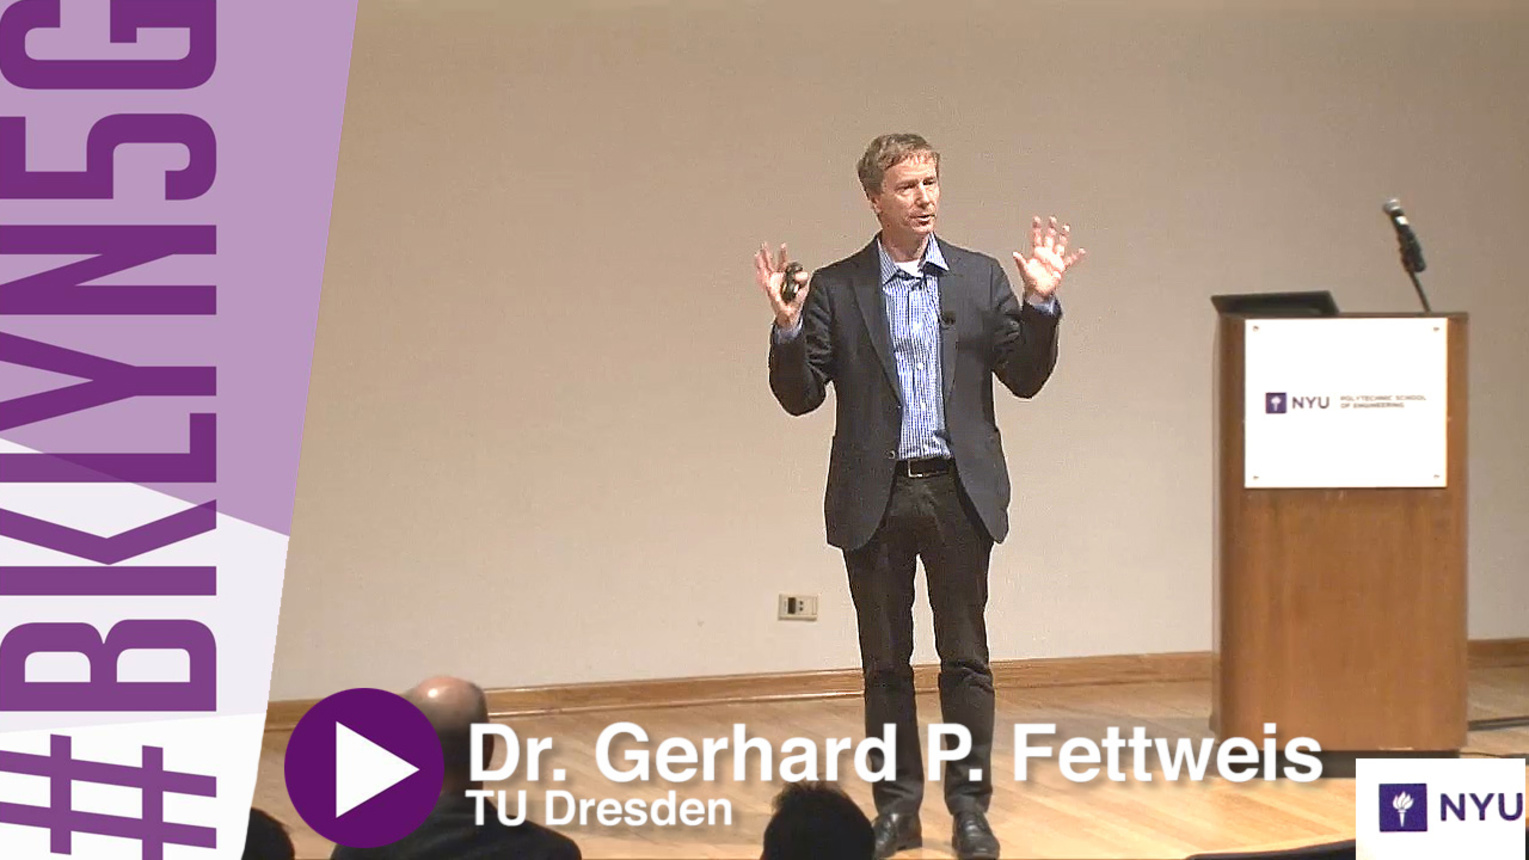 Brooklyn 5G - 2015 - Gerhard P. Fettweis - The Tactile Internet and its Millisecond